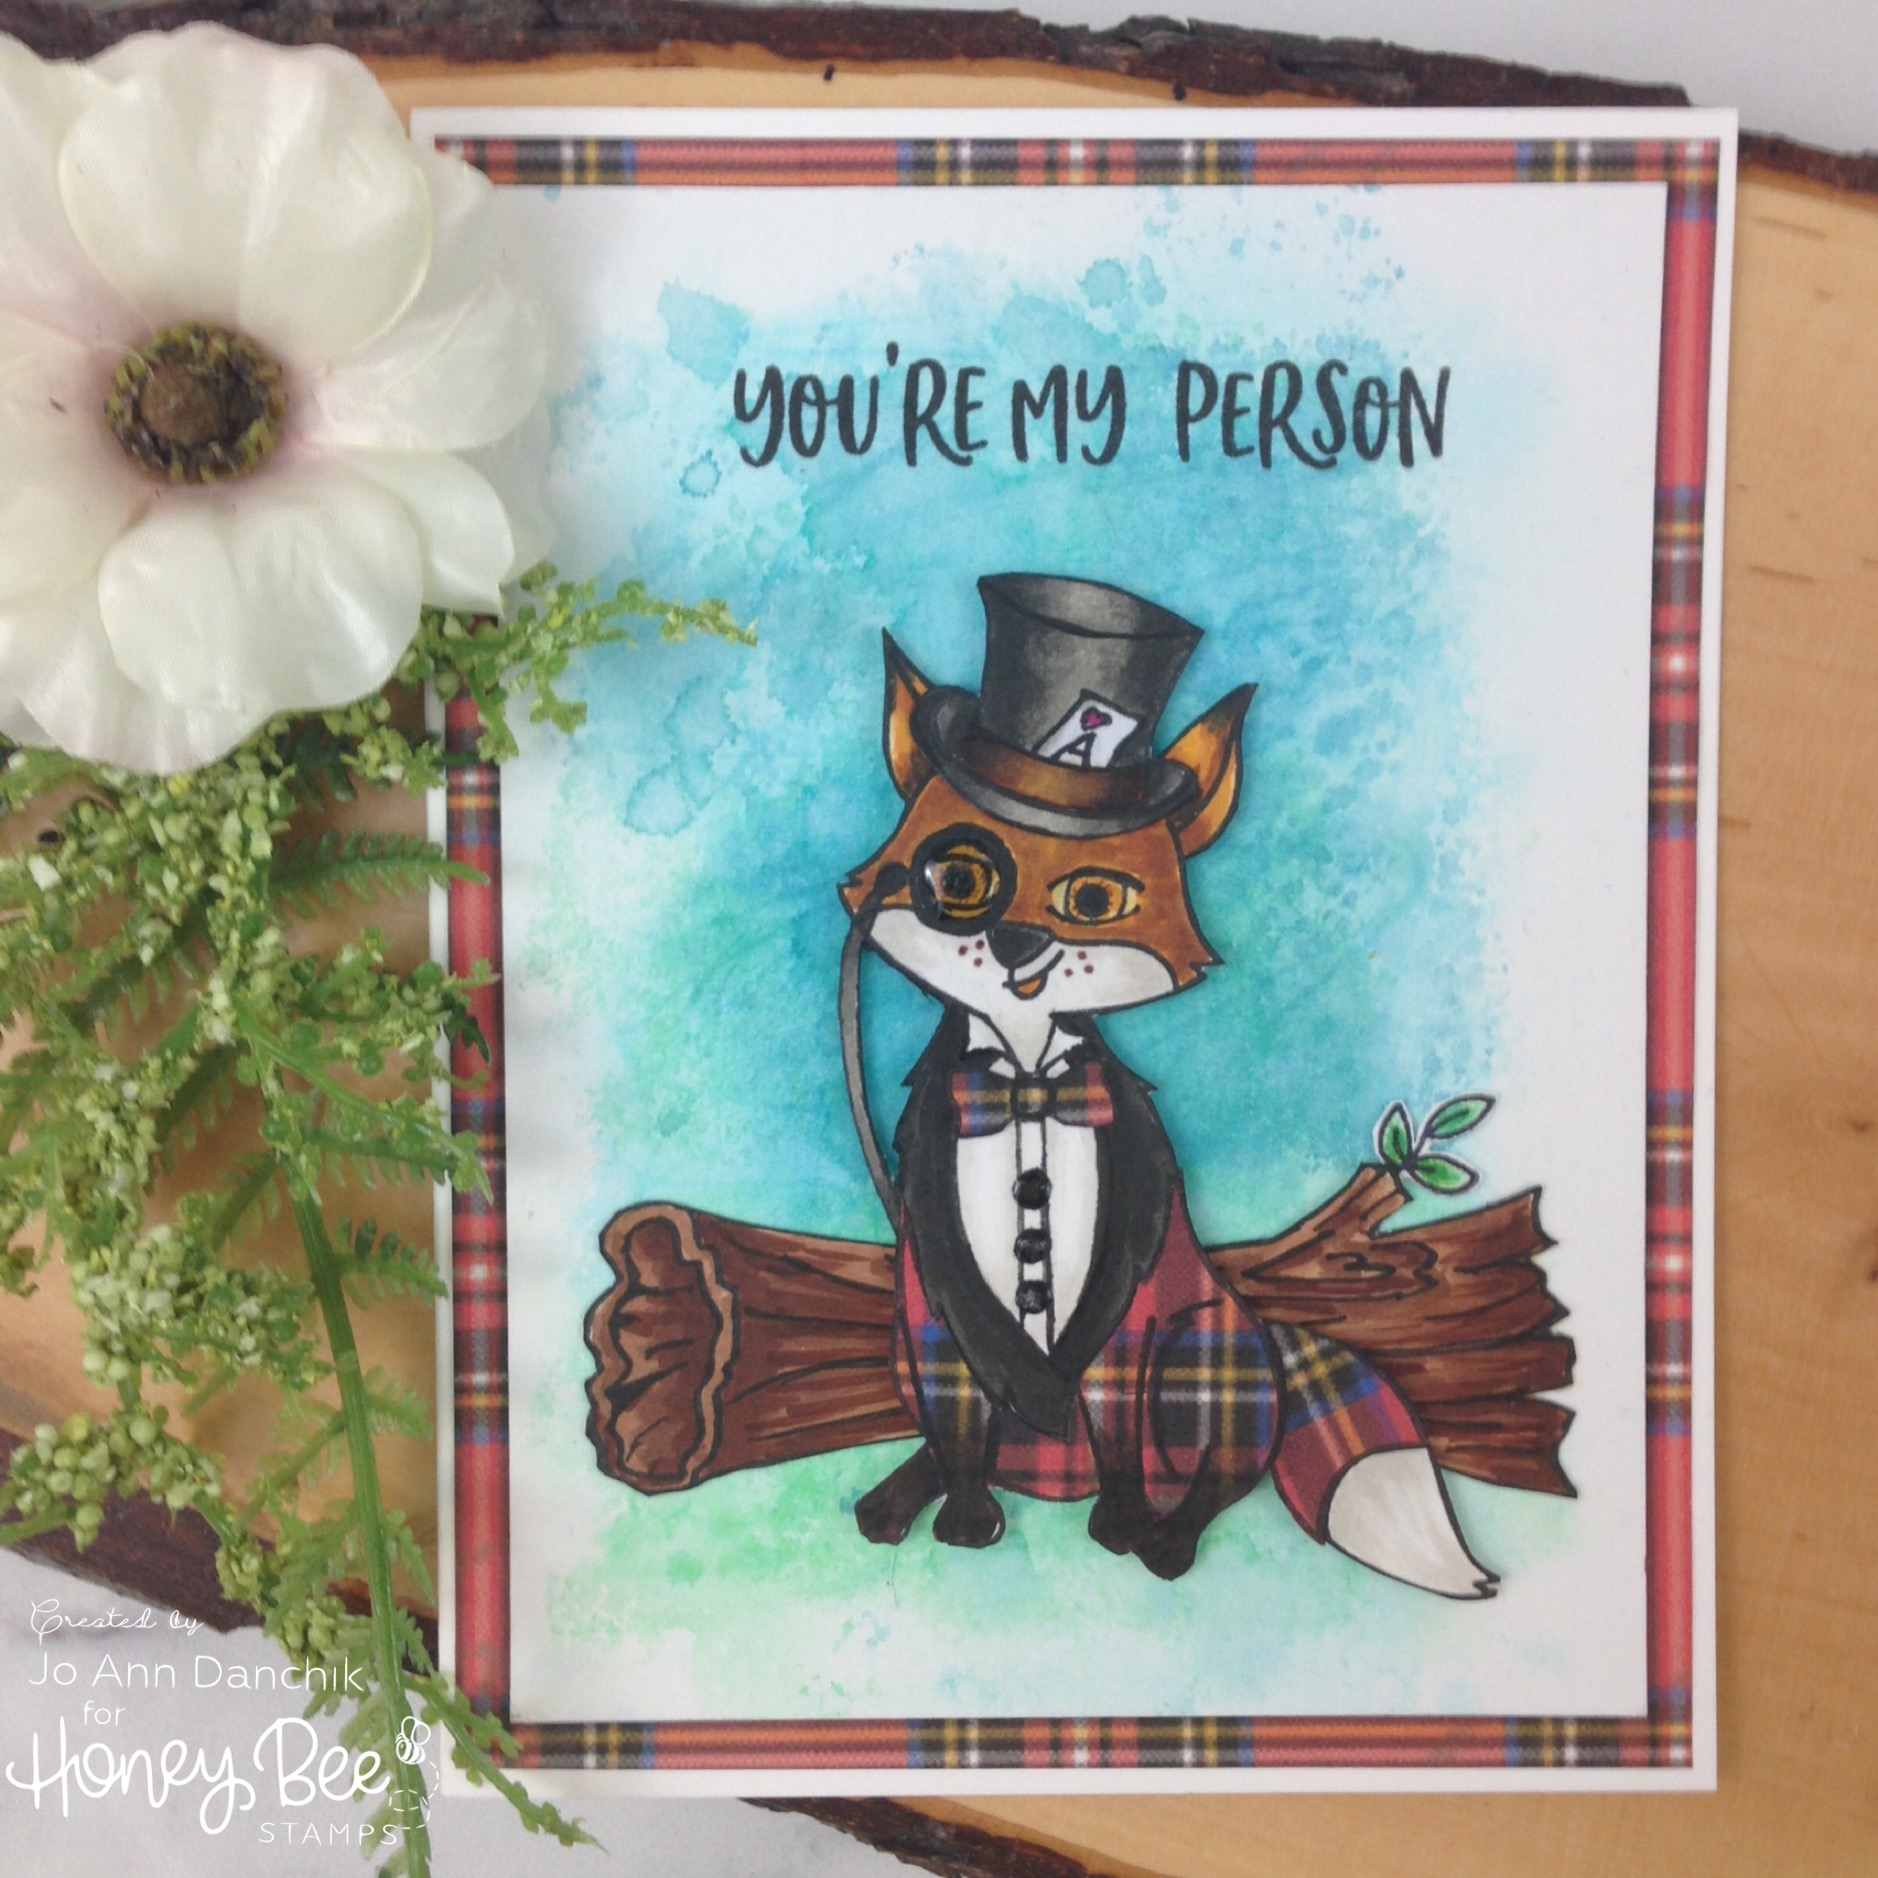 Creative Sundays With Jo Ann: You're My Person